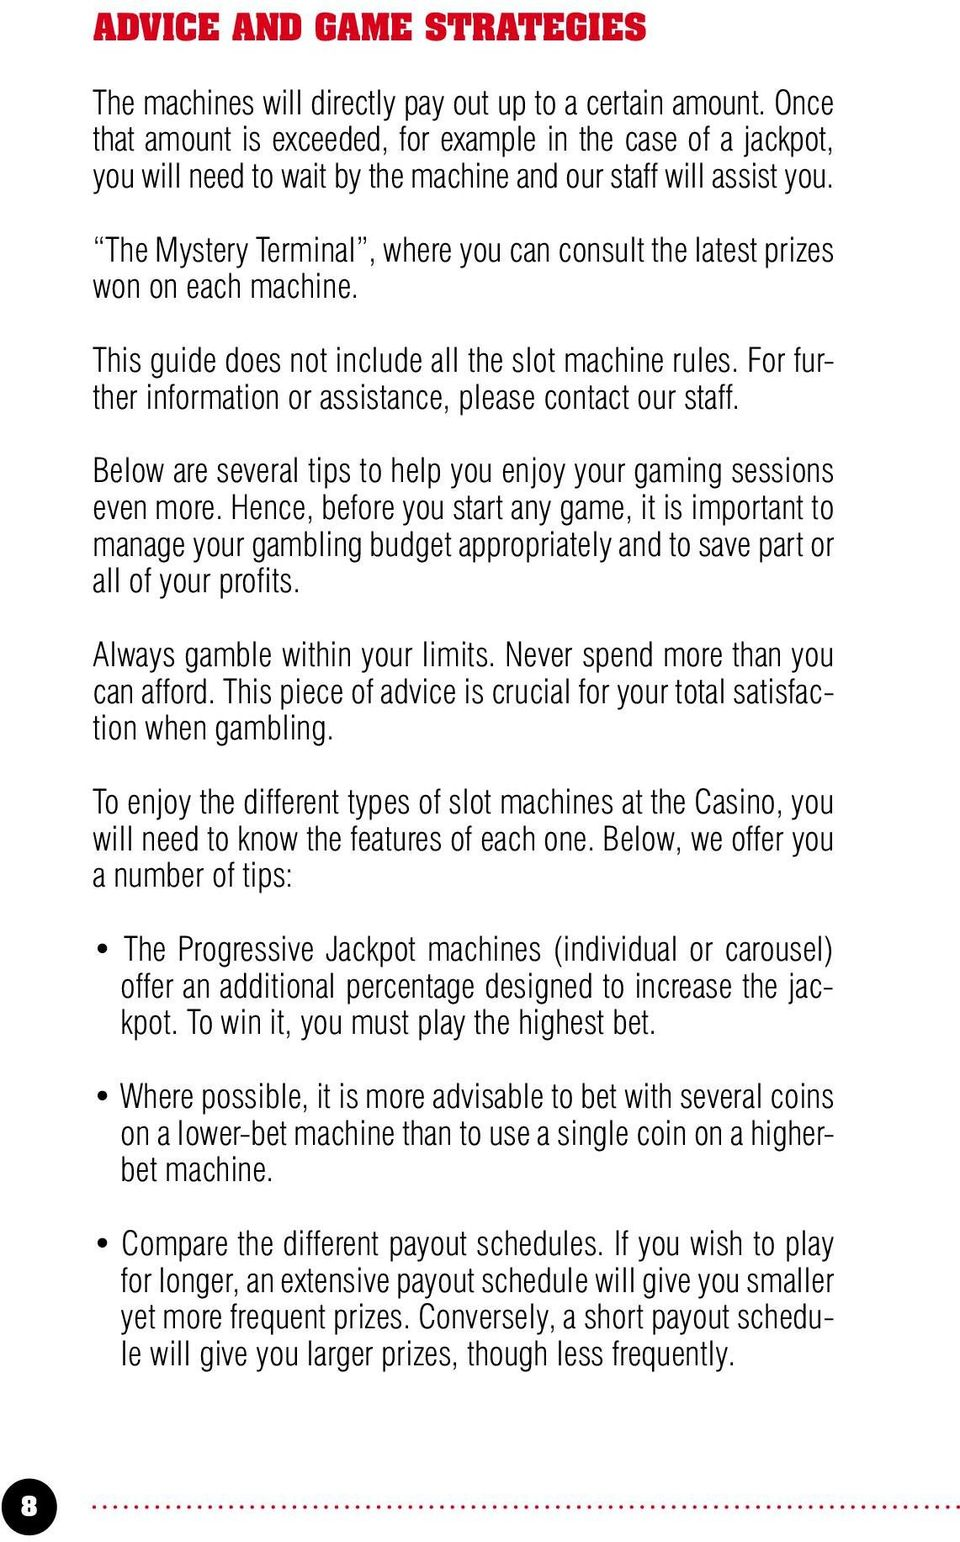 The Mystery Terminal, where you can consult the latest prizes won on each machine. This guide does not include all the slot machine rules.